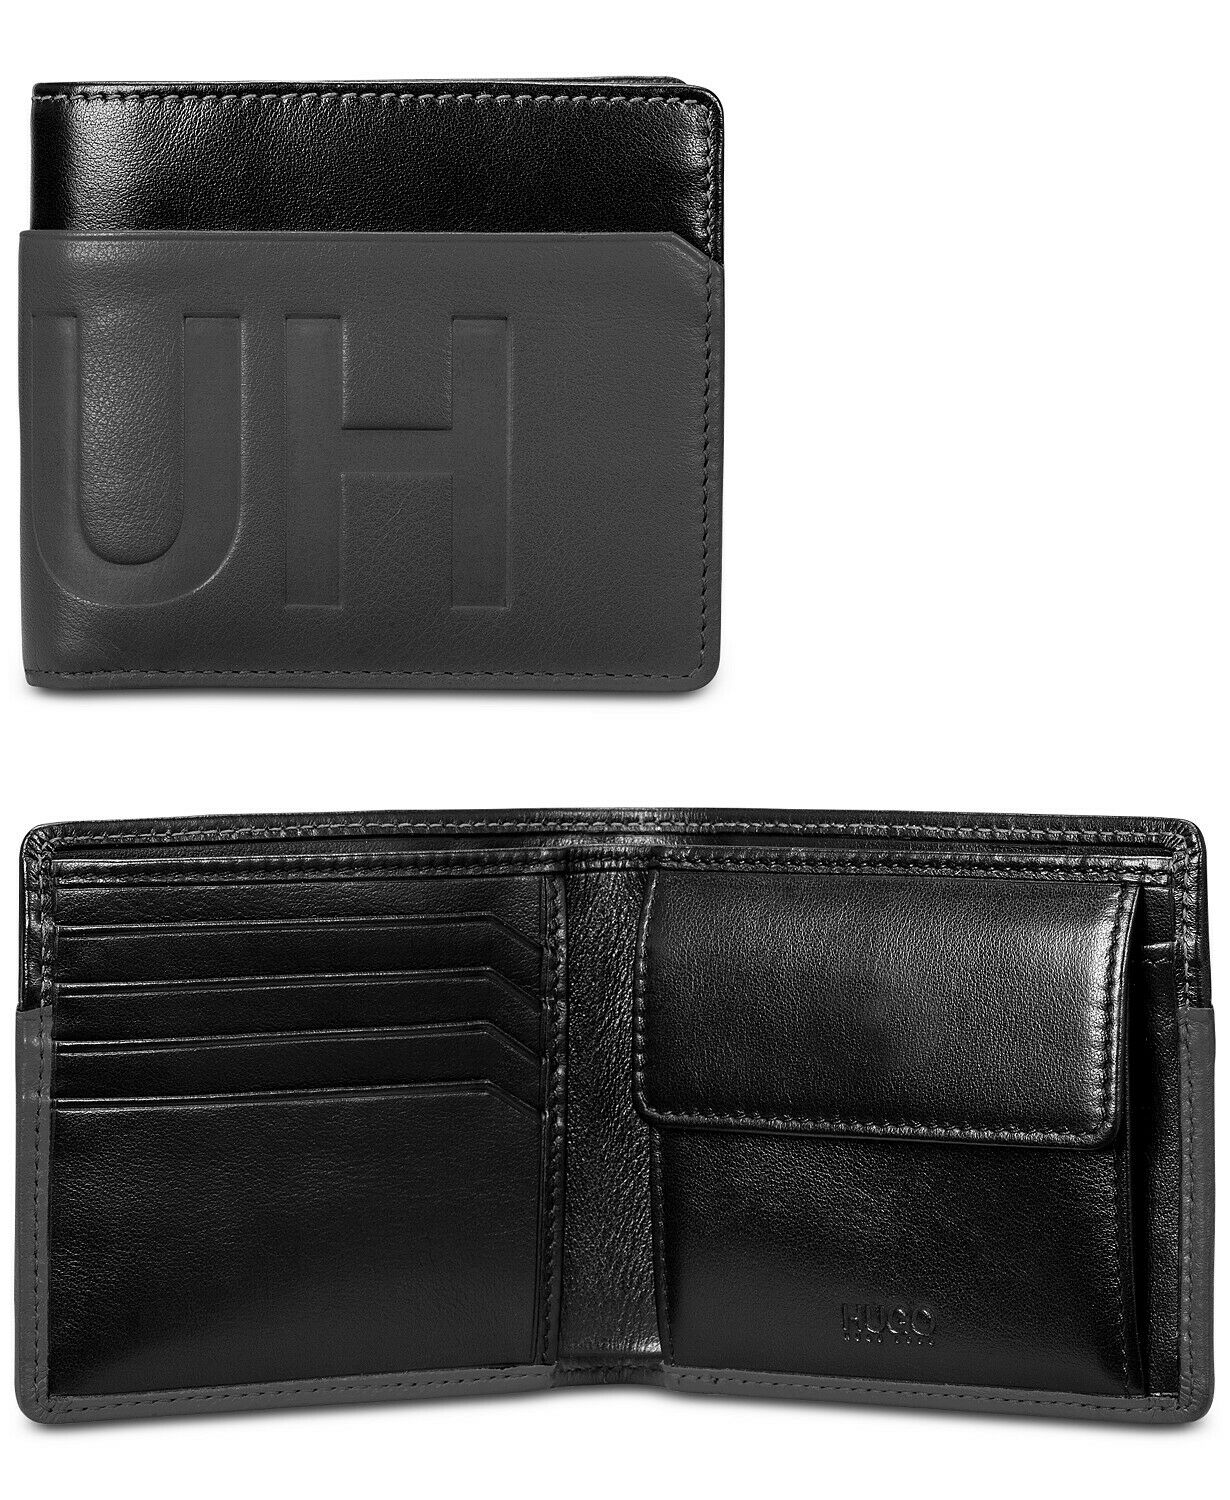 BOSS Hugo Boss Mens Majestic Card Holder Accessory